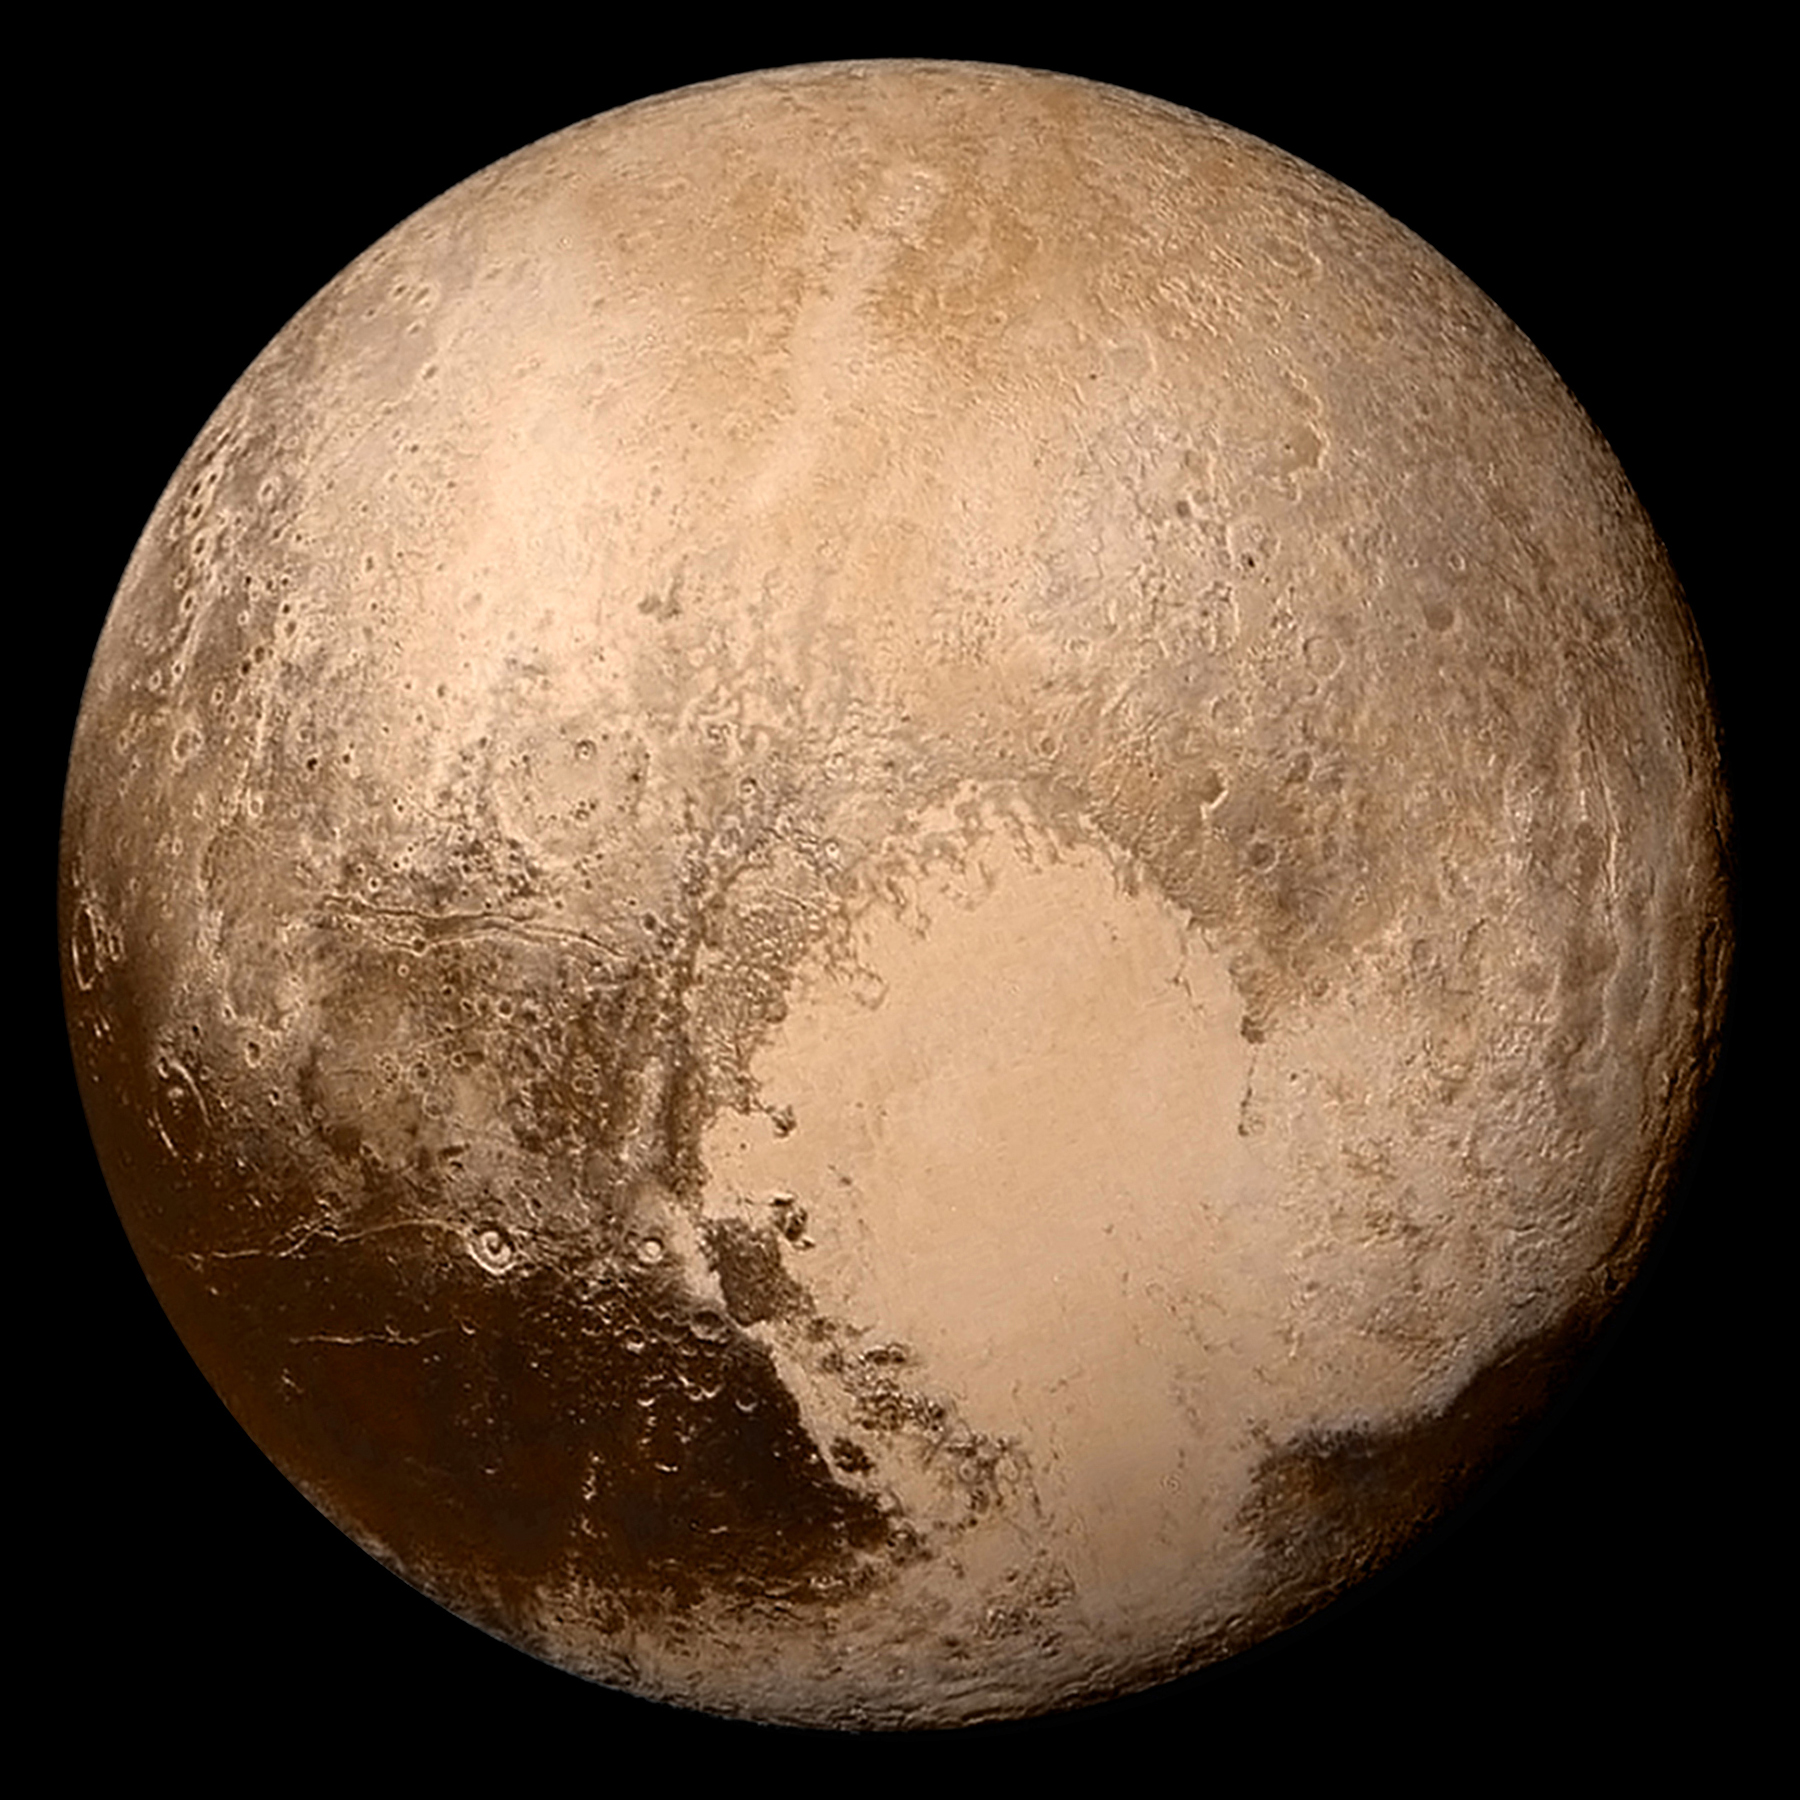 Pluto as imaged by the New Horizons space probe (credit:- NASA/Johns Hopkins University Applied Physics Laboratory/Southwest Research Institute)